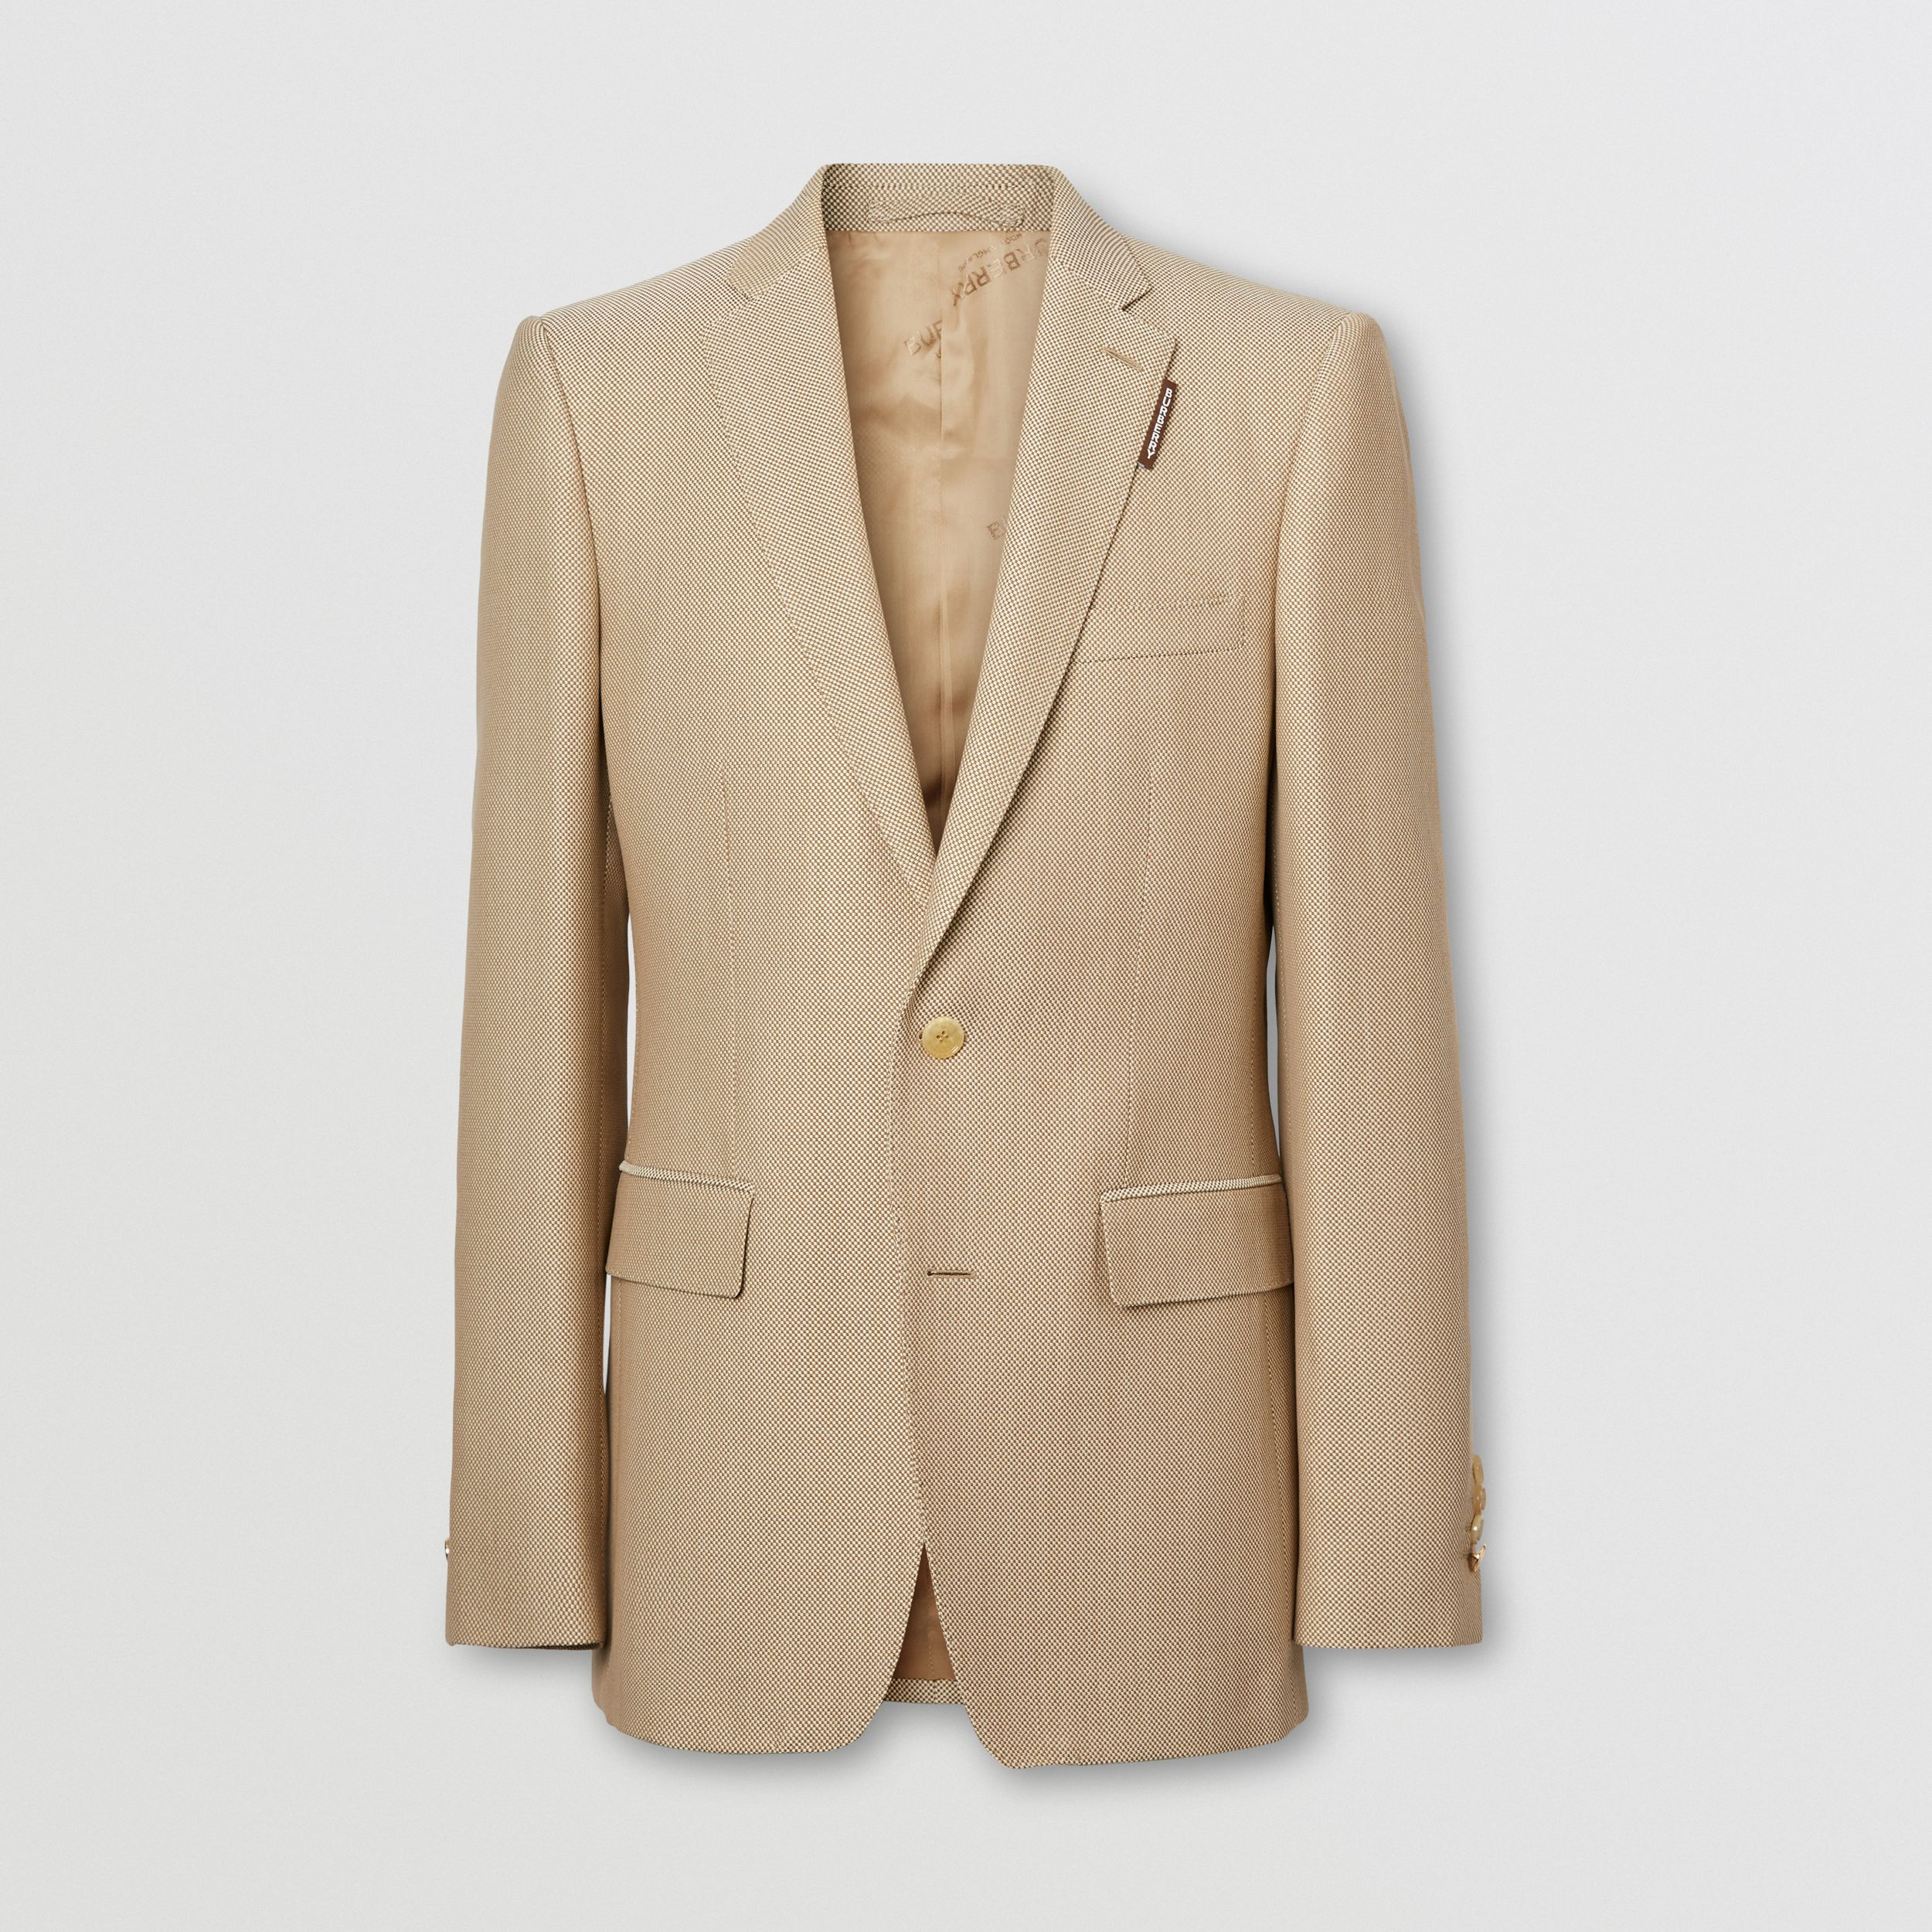 English Fit Technical Wool Canvas Tailored Jacket in Dusty Sand - Men | Burberry - 4